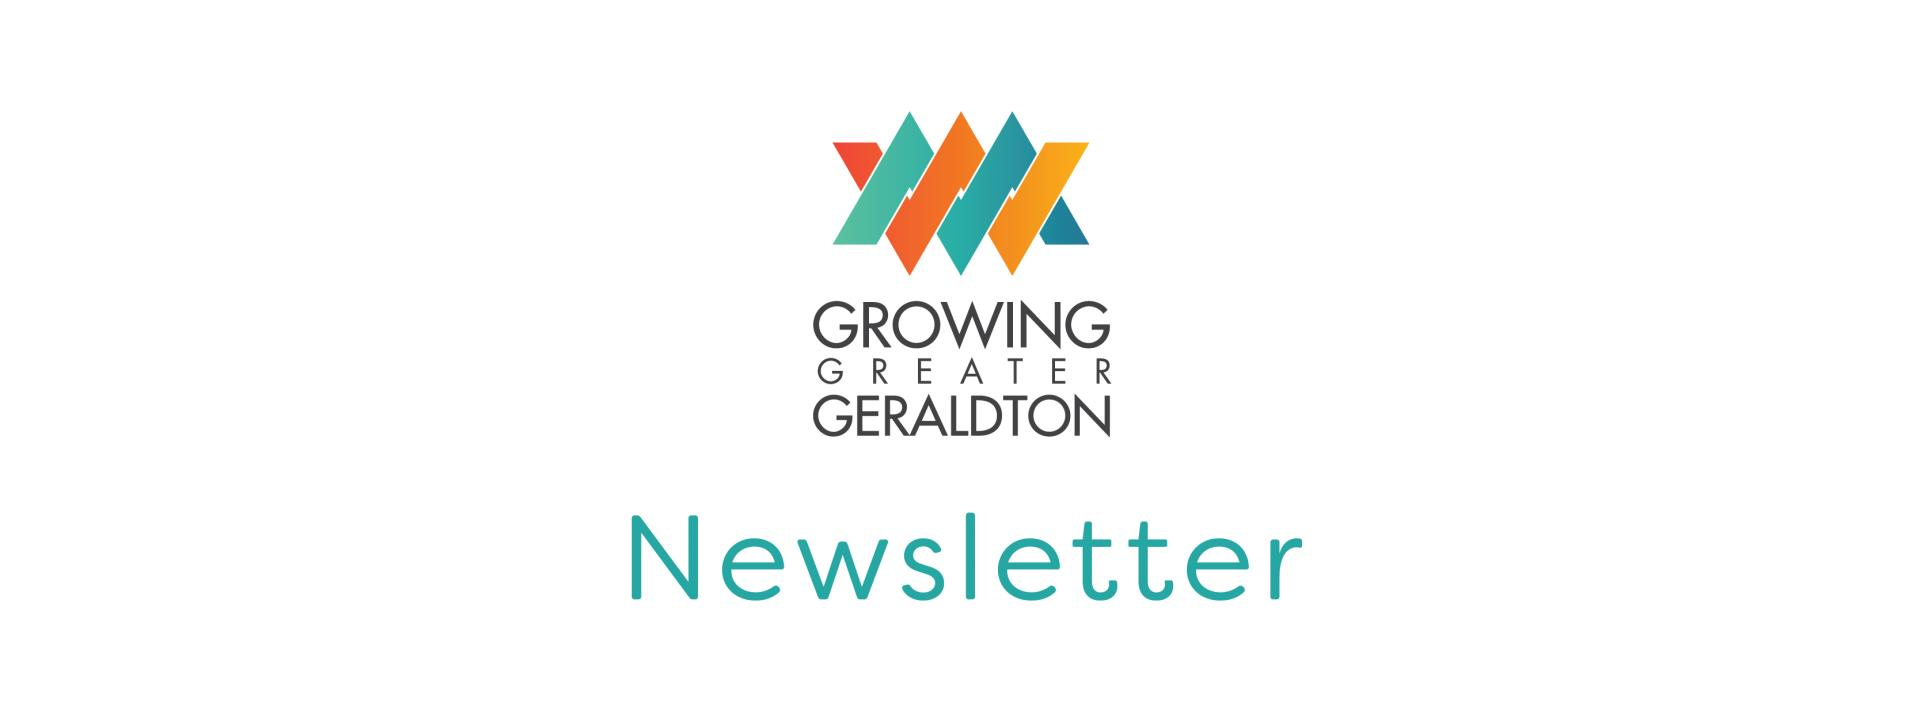 Growing Greater Geraldton Newsletter